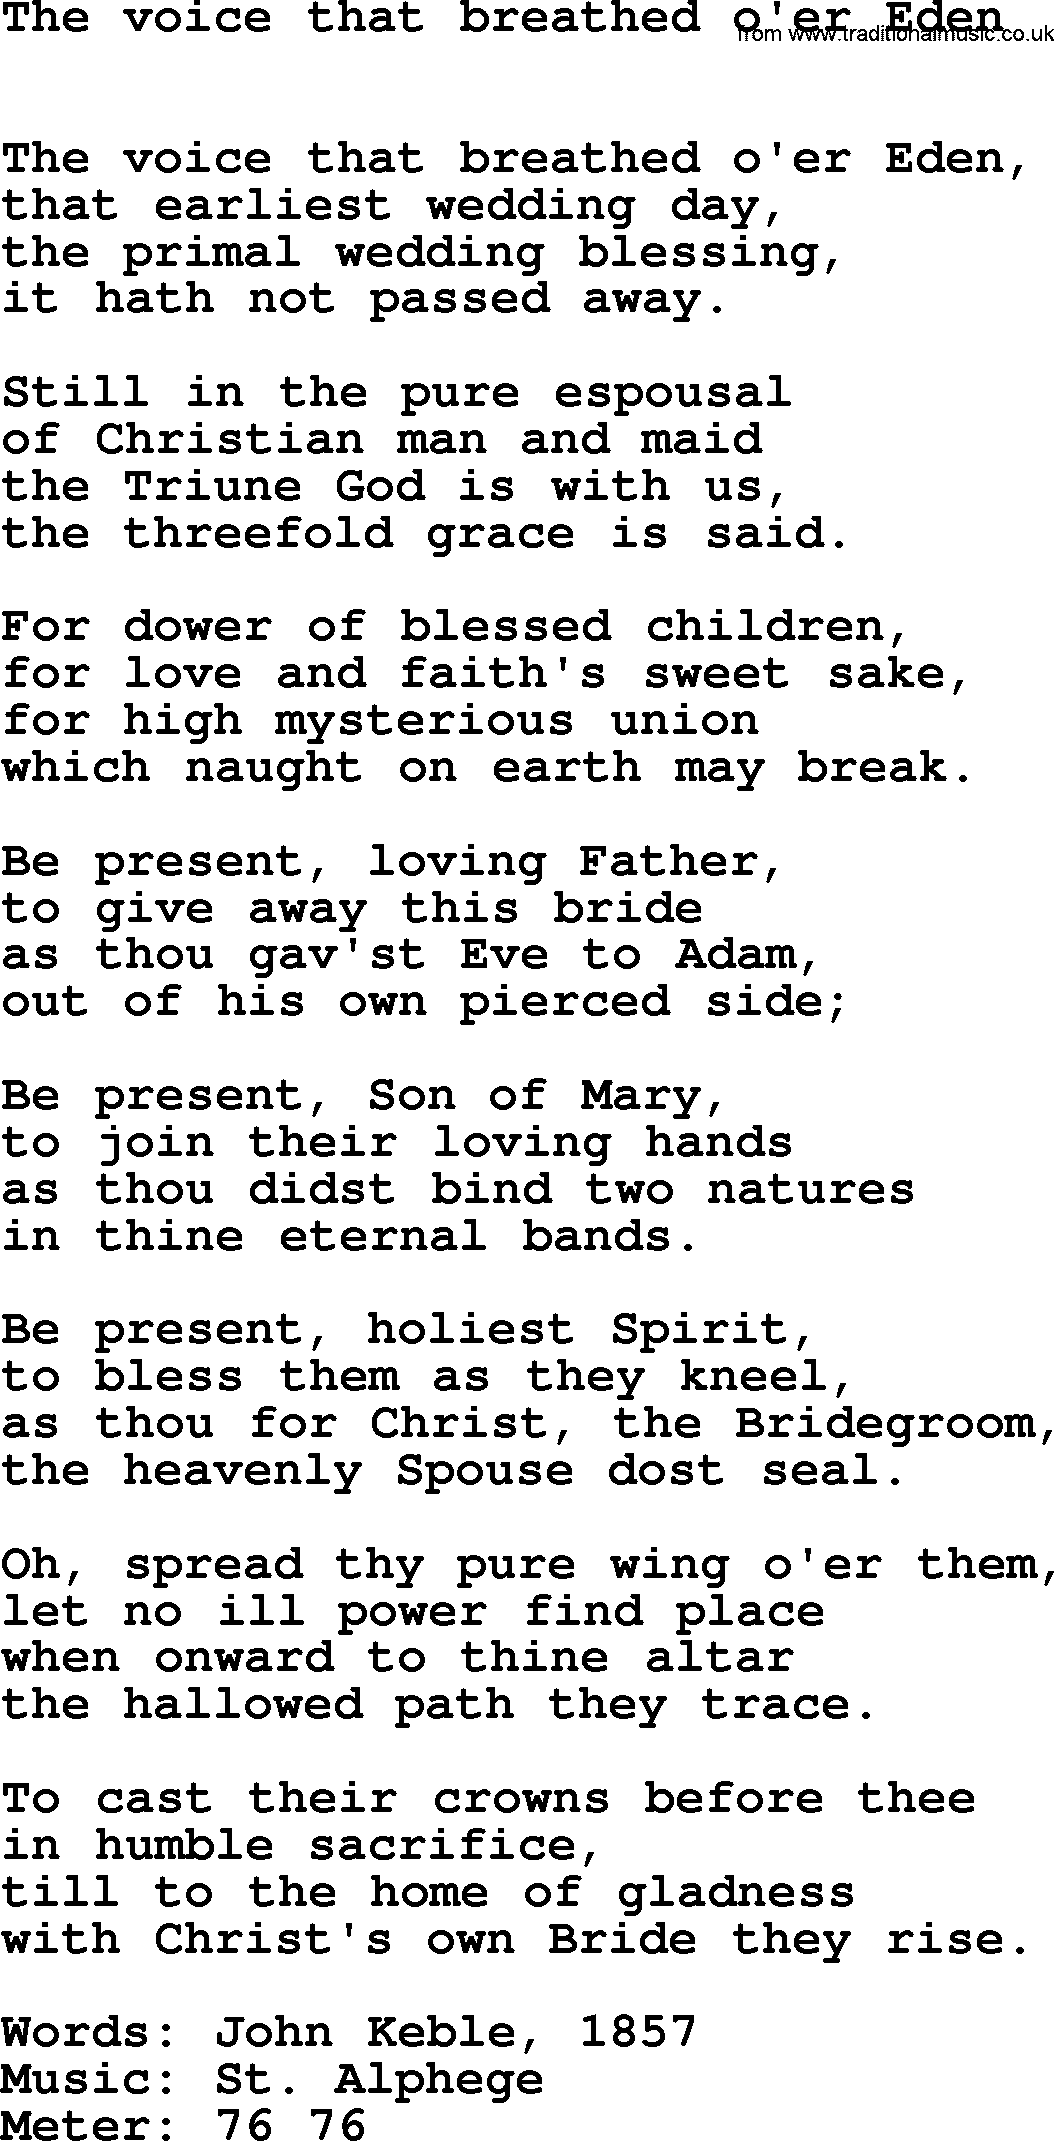 Hymns Ancient and Modern Hymn: The Voice That Breathed O'er Eden, lyrics